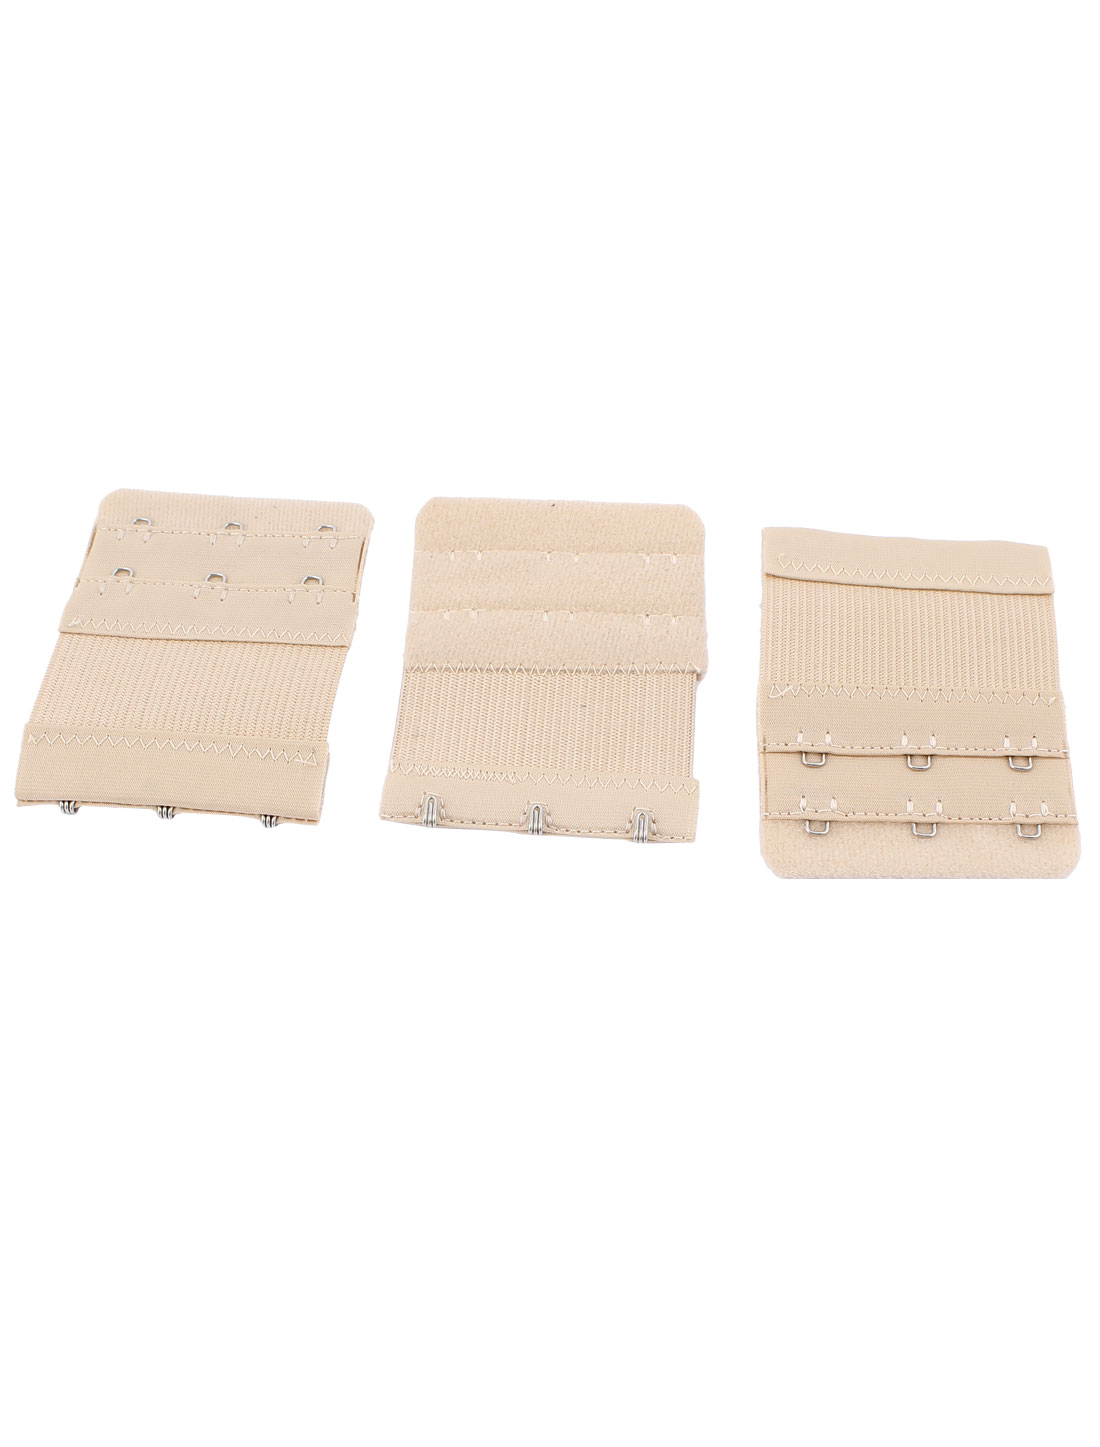 3pcs Eye Closure Dual Row 3 Hooks Spandex Stretch Soft Lingerie Bra Strap Back Band Extension Extenders Beige for Lady